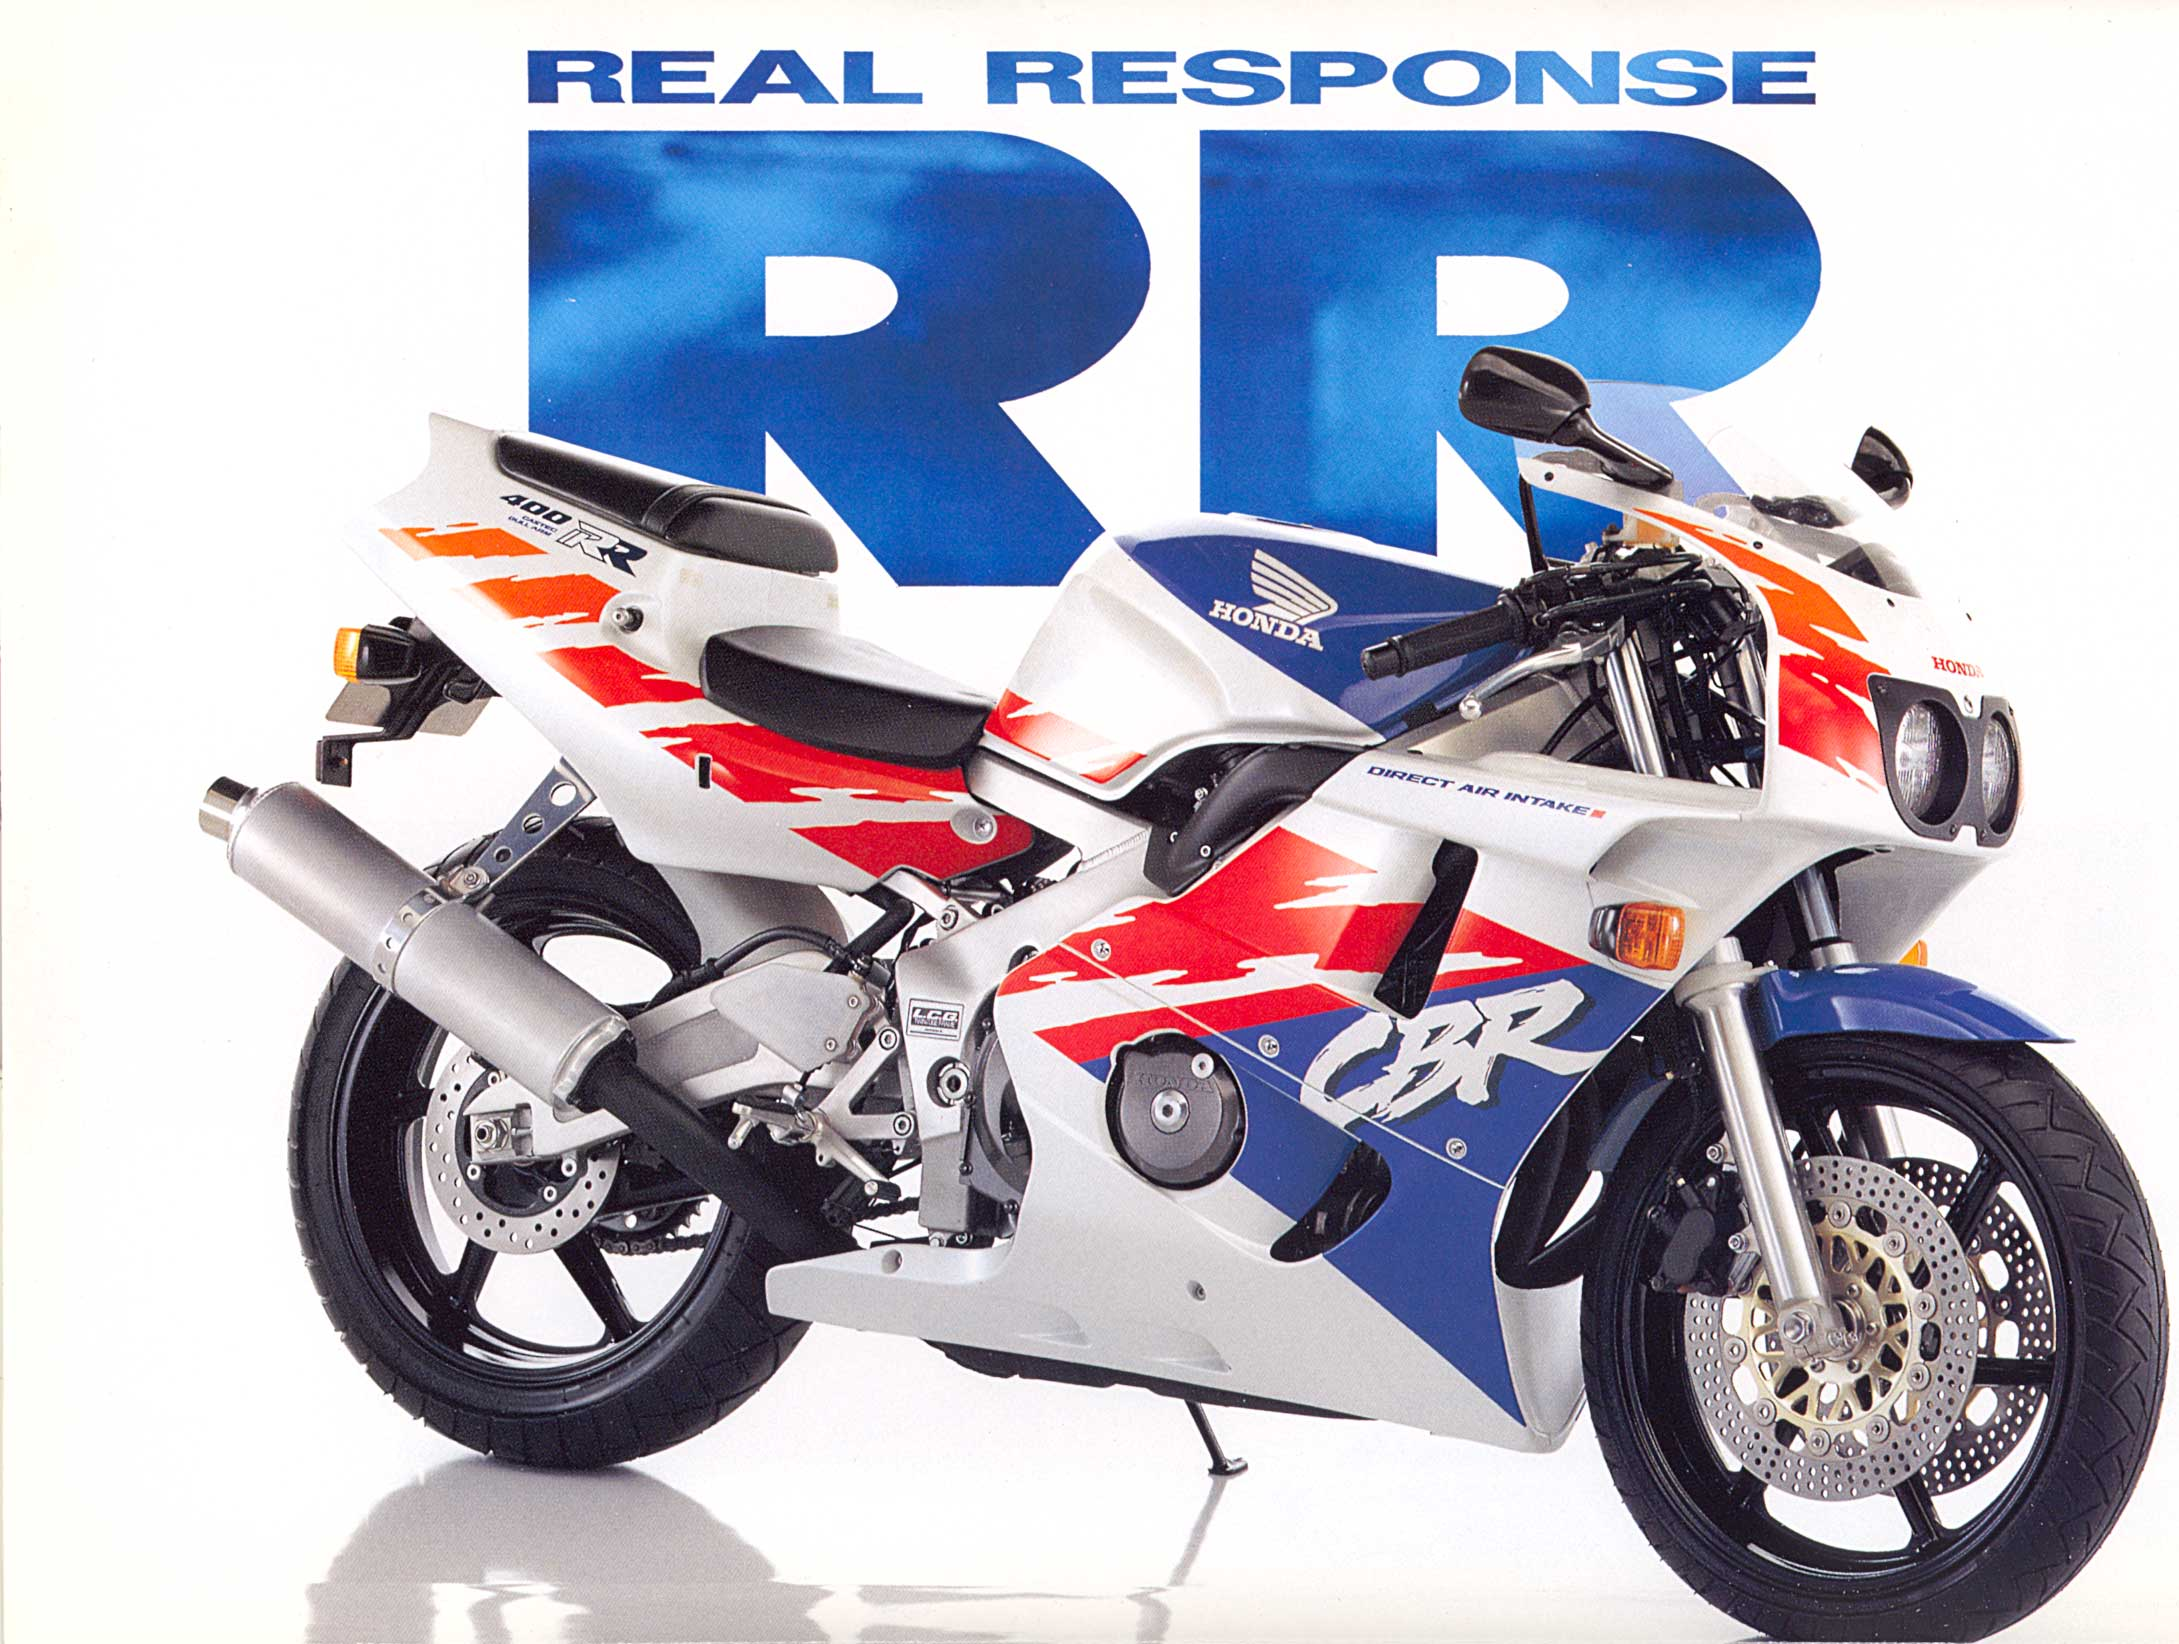 Back Download Honda CBR 900 RR picture # 7, size 2179x1644 Next